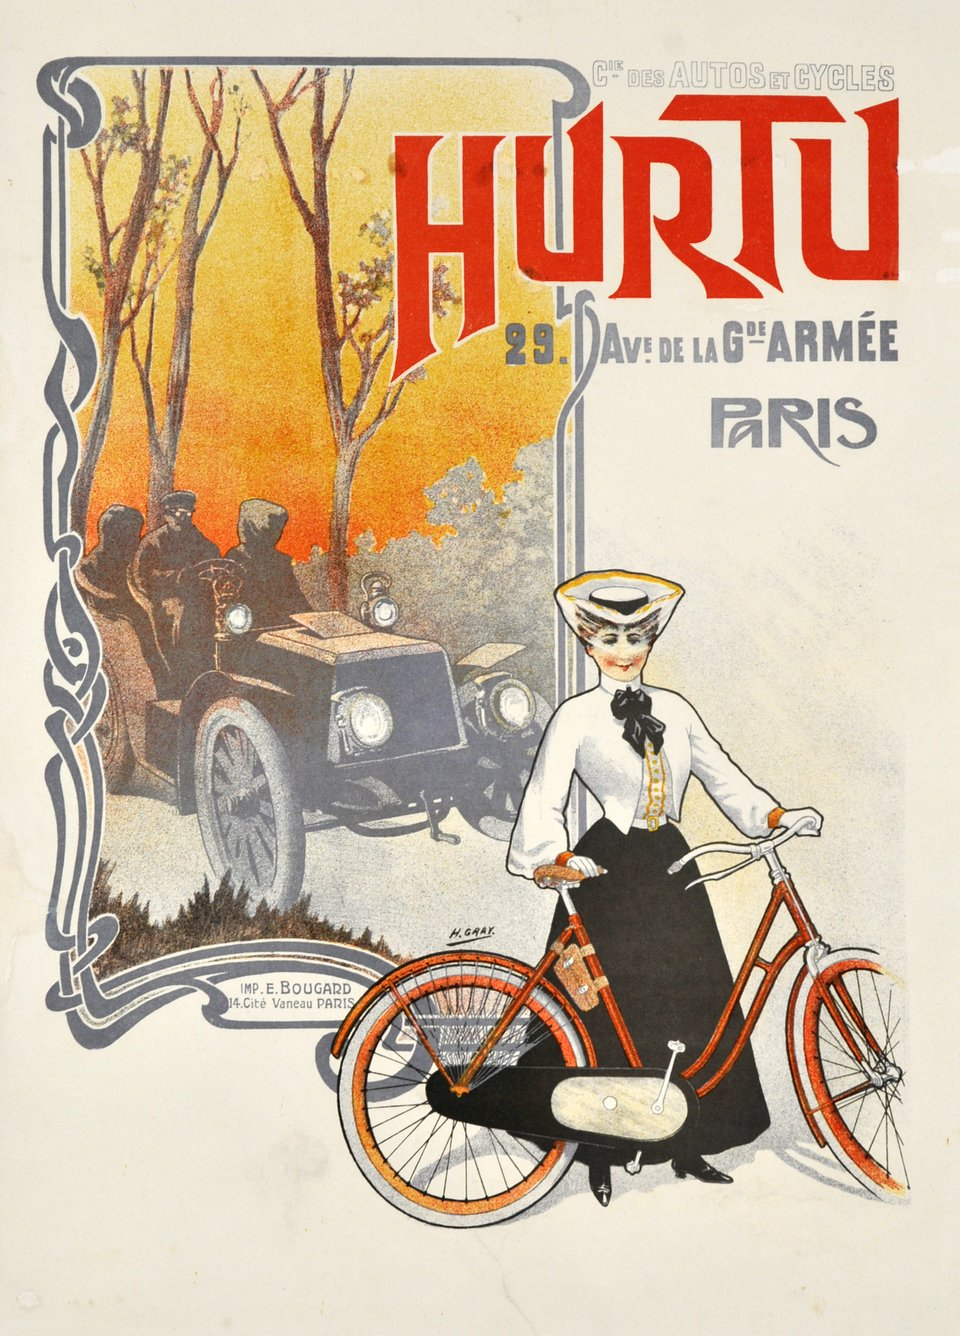 Cie des Autos et Cycles, Hurtu Paris – Vintage poster – Henri GRAY – 1900